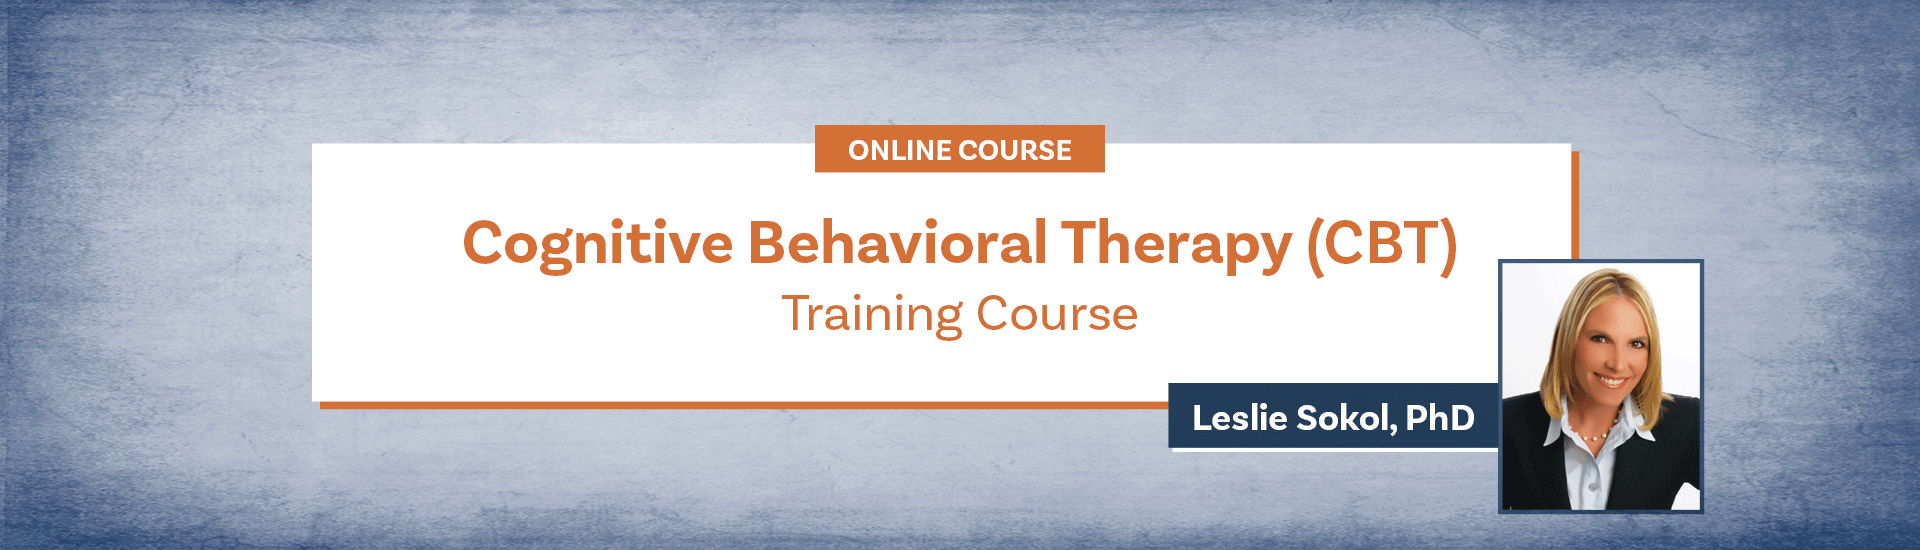 Cognitive Behavioral Therapy (CBT)Training Course